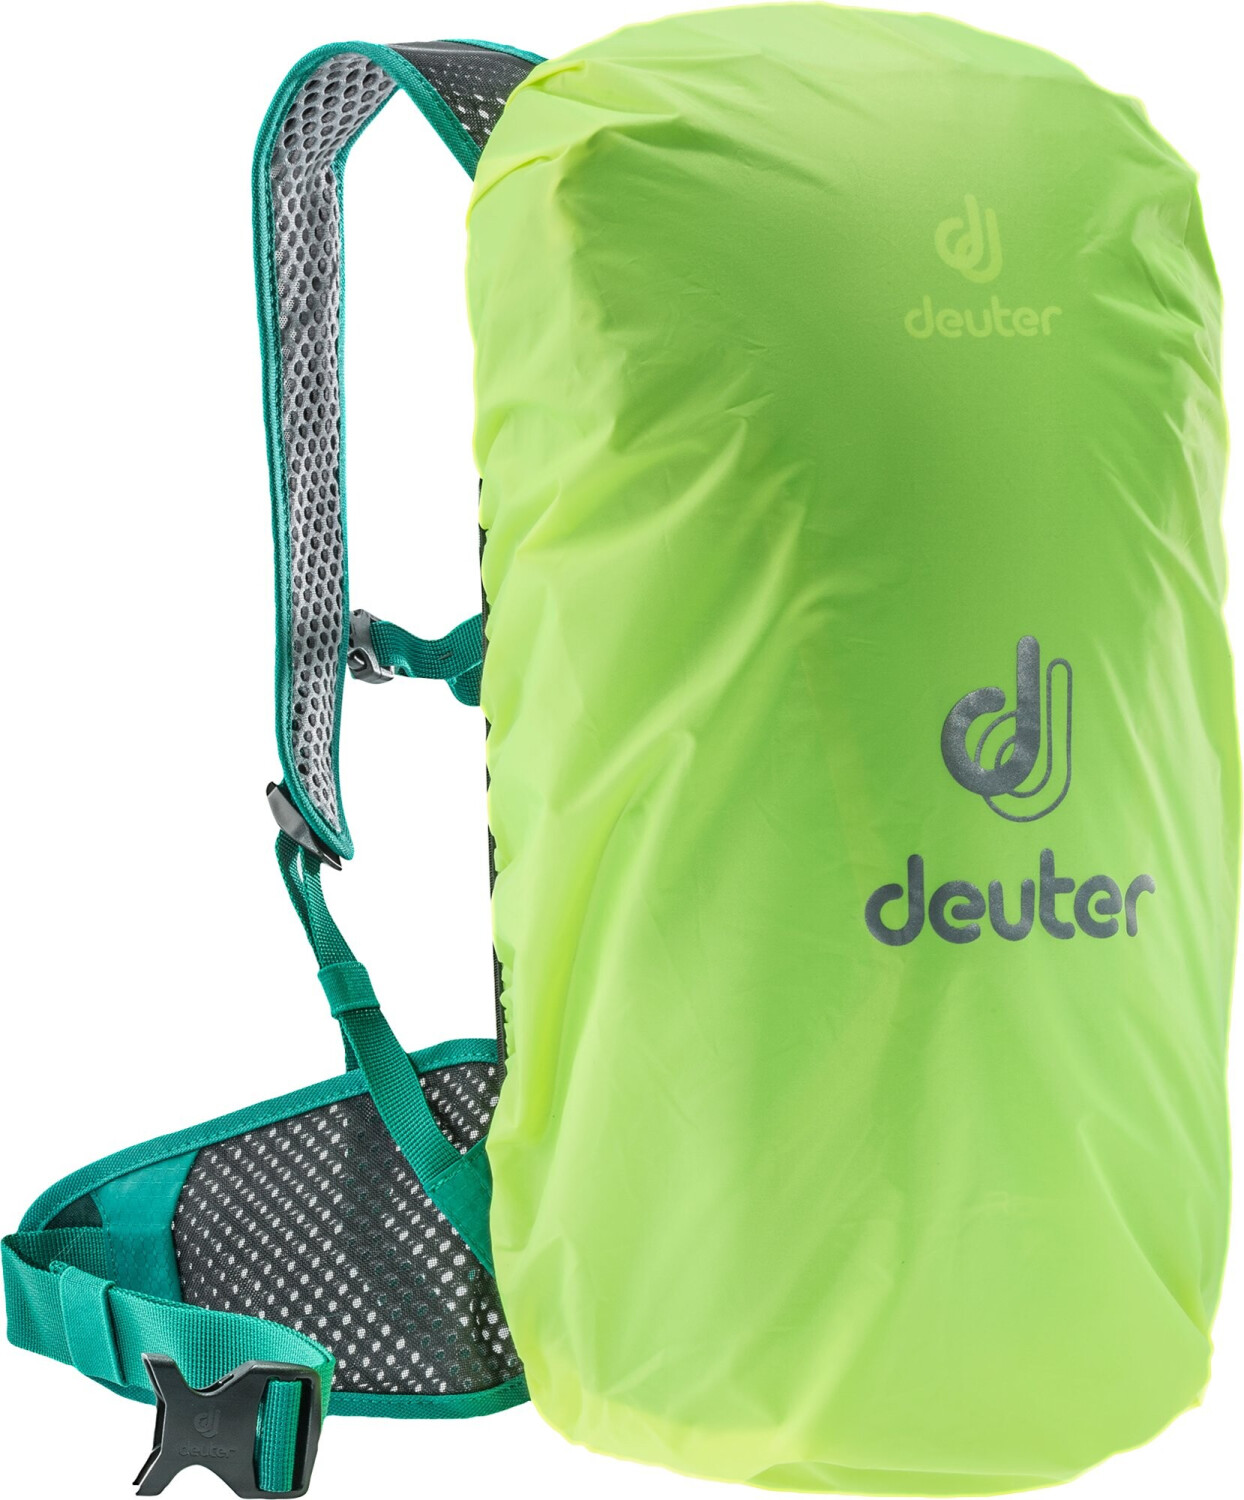 Deuter Race alpinegreen/forest (2018)